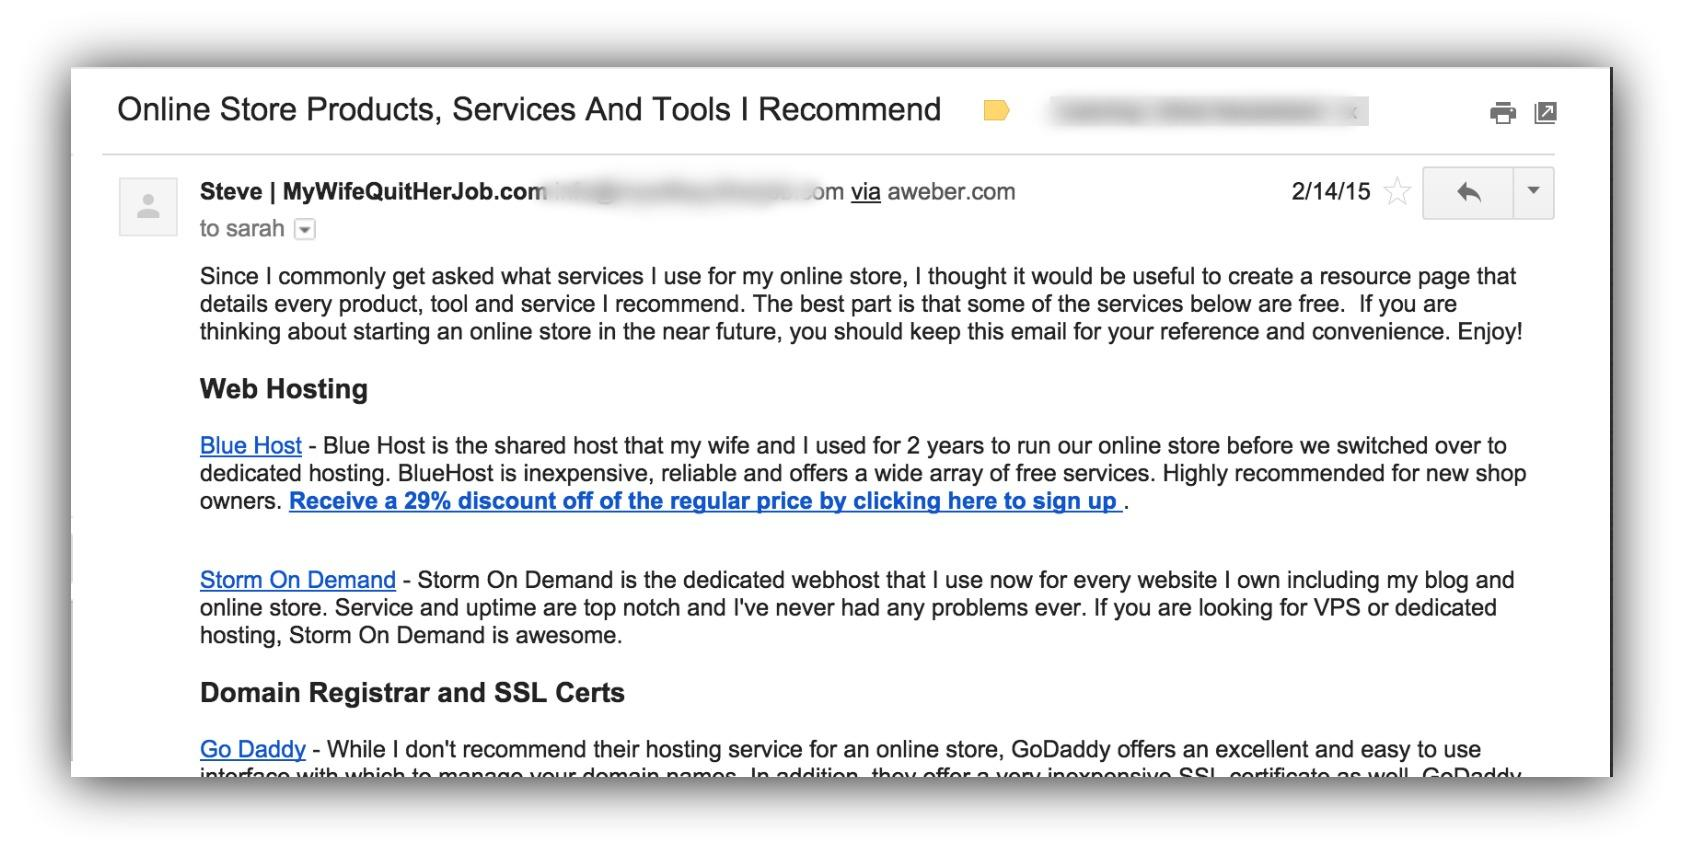 Screenshot of an email sent by Steve of mywifequitherjob.com